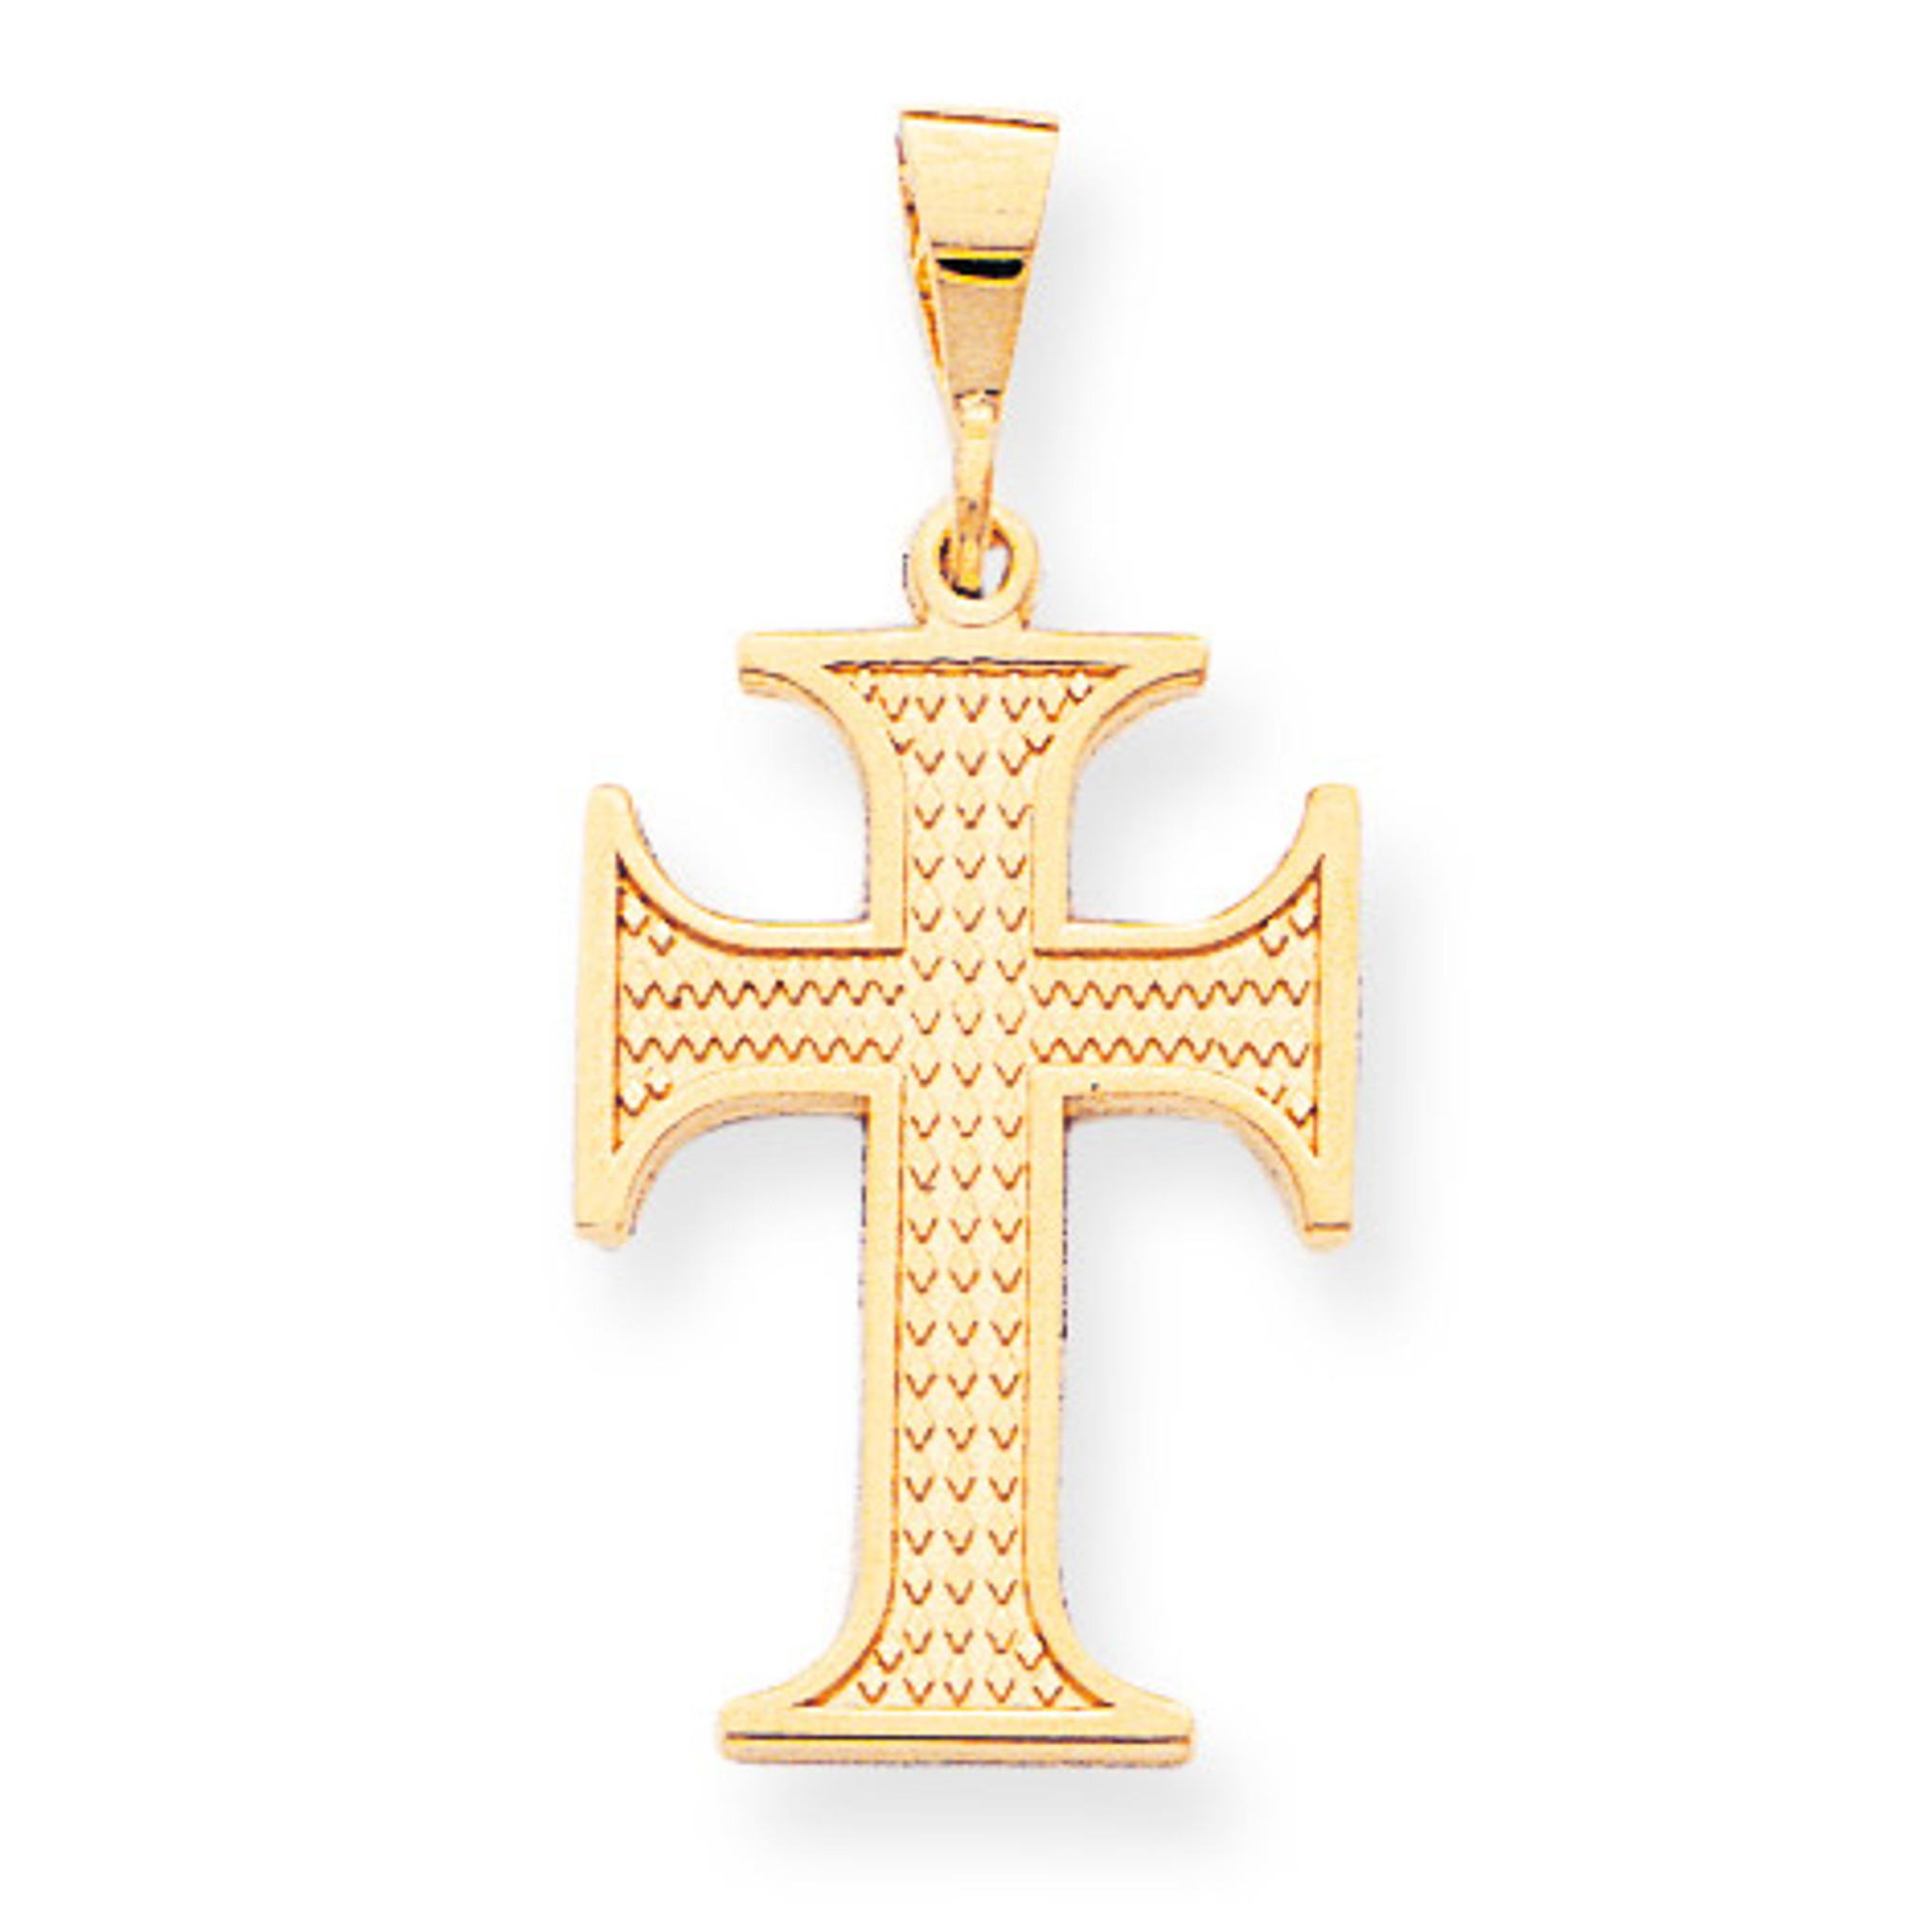 10k Yellow Gold Solid Textured Polished Flat back Cross Charm